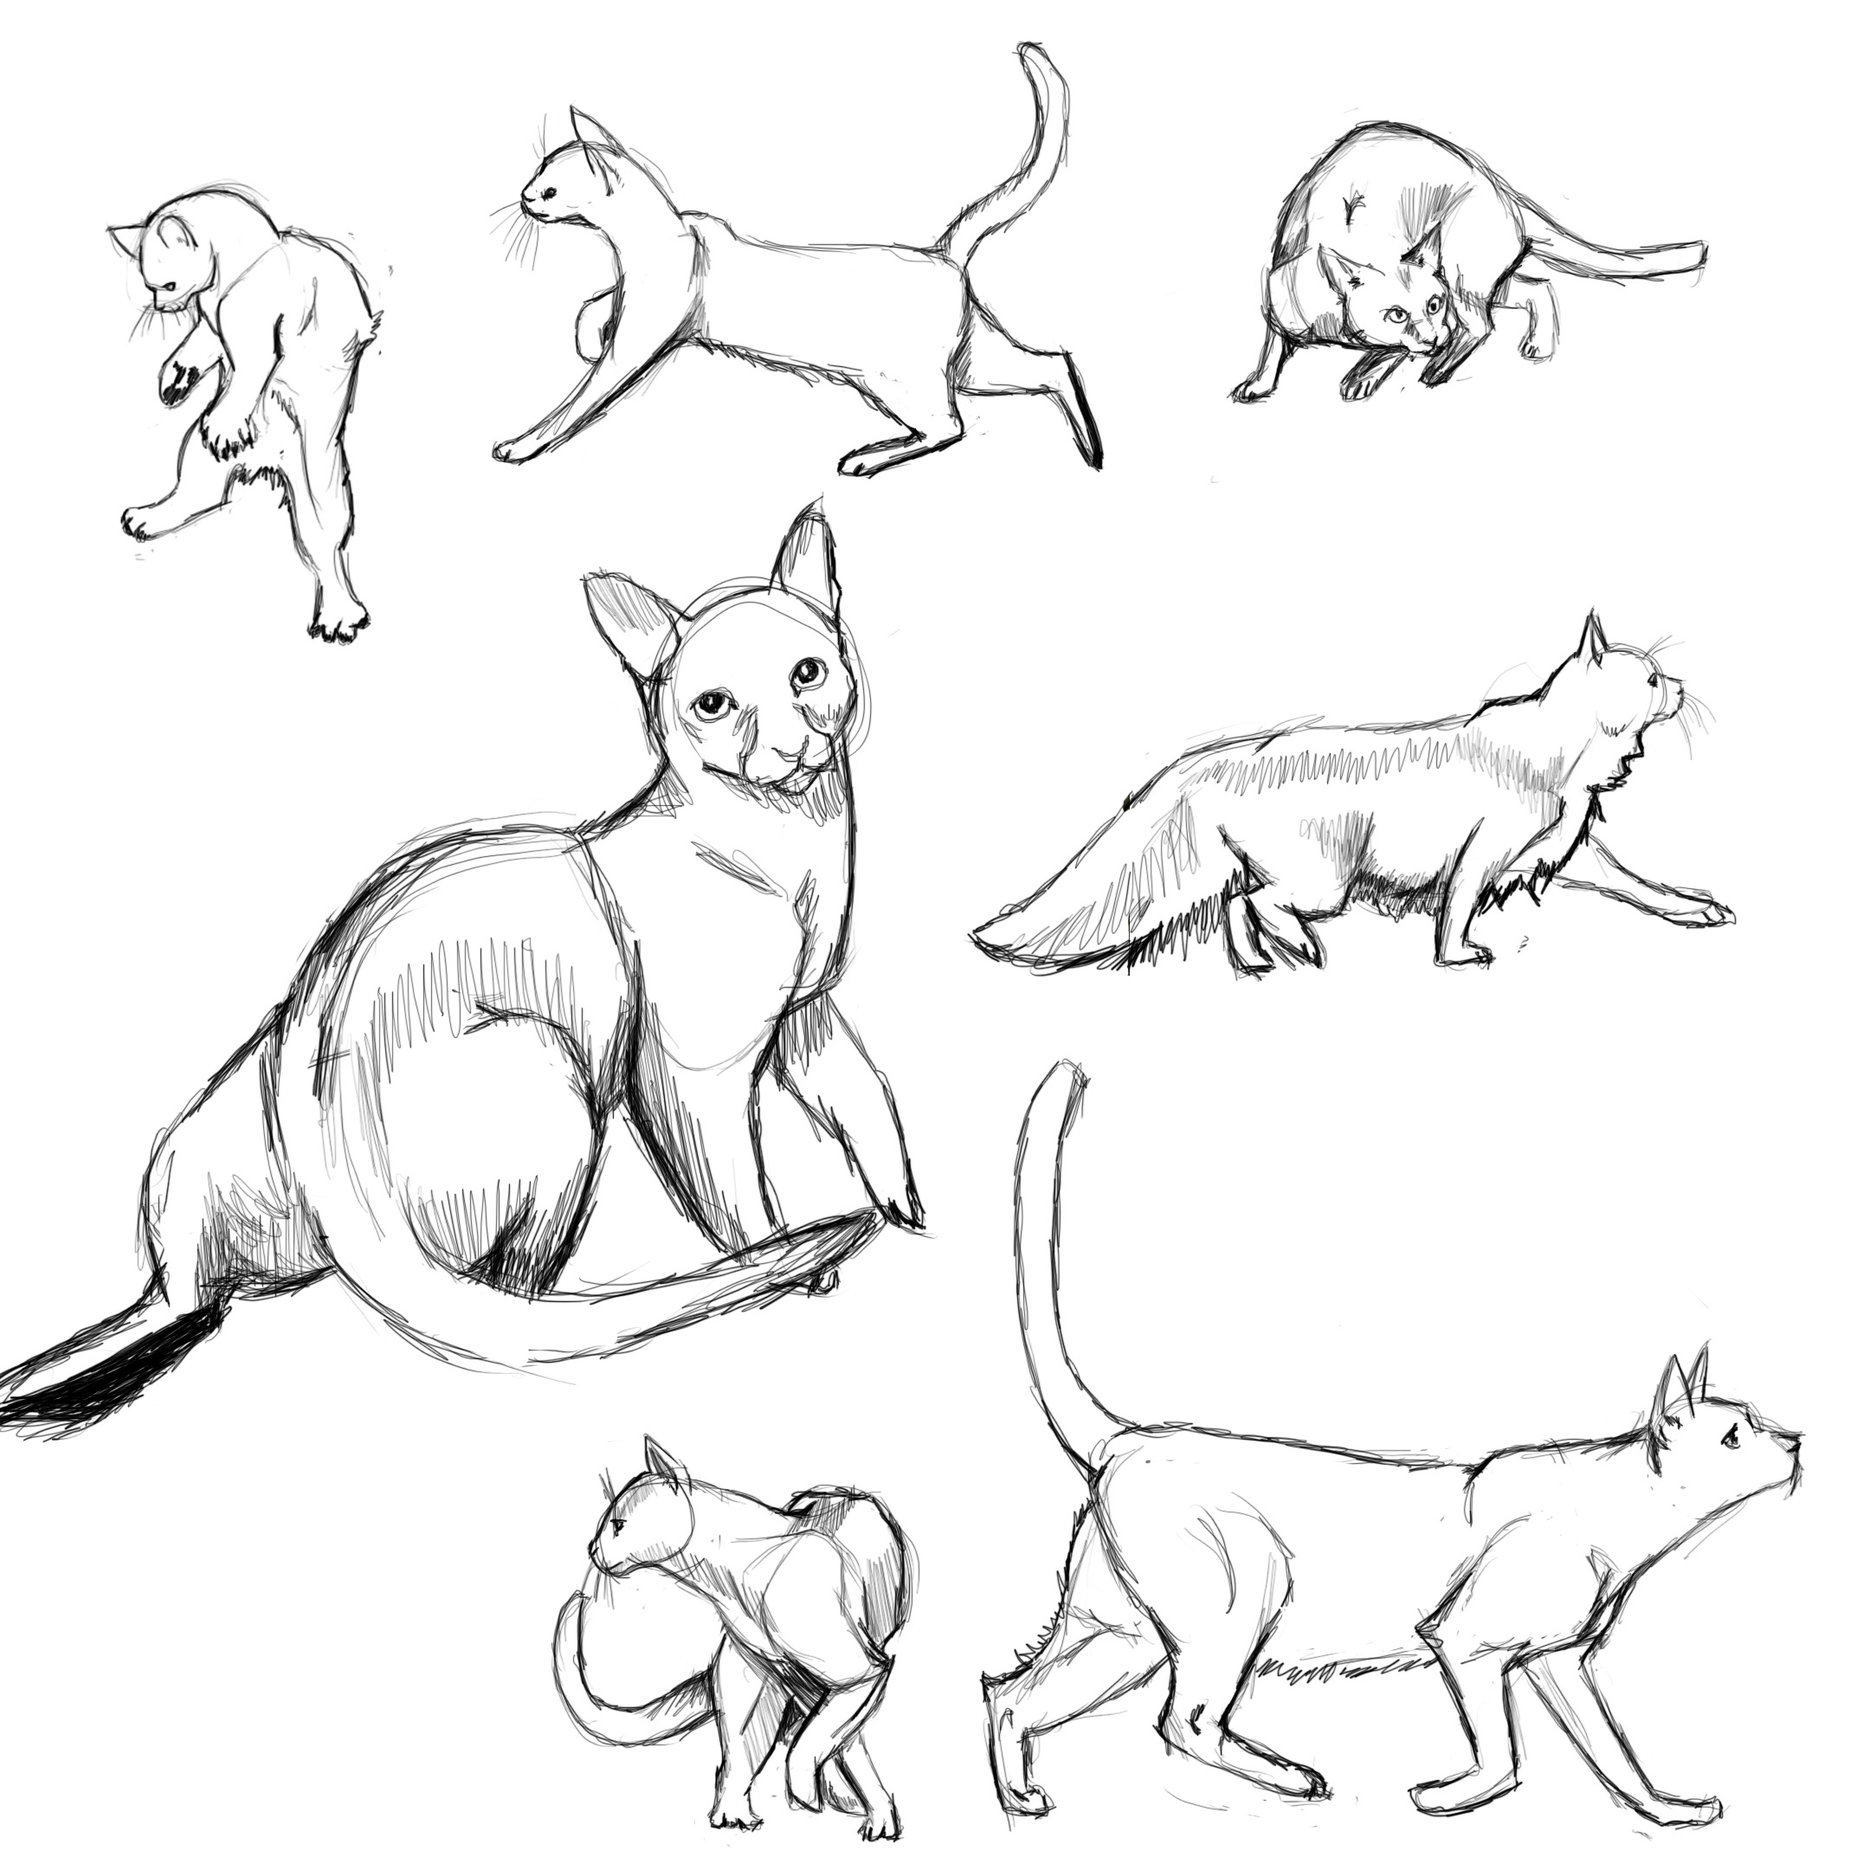 Cat Poses: study1 by FlameFoxe on DeviantArt